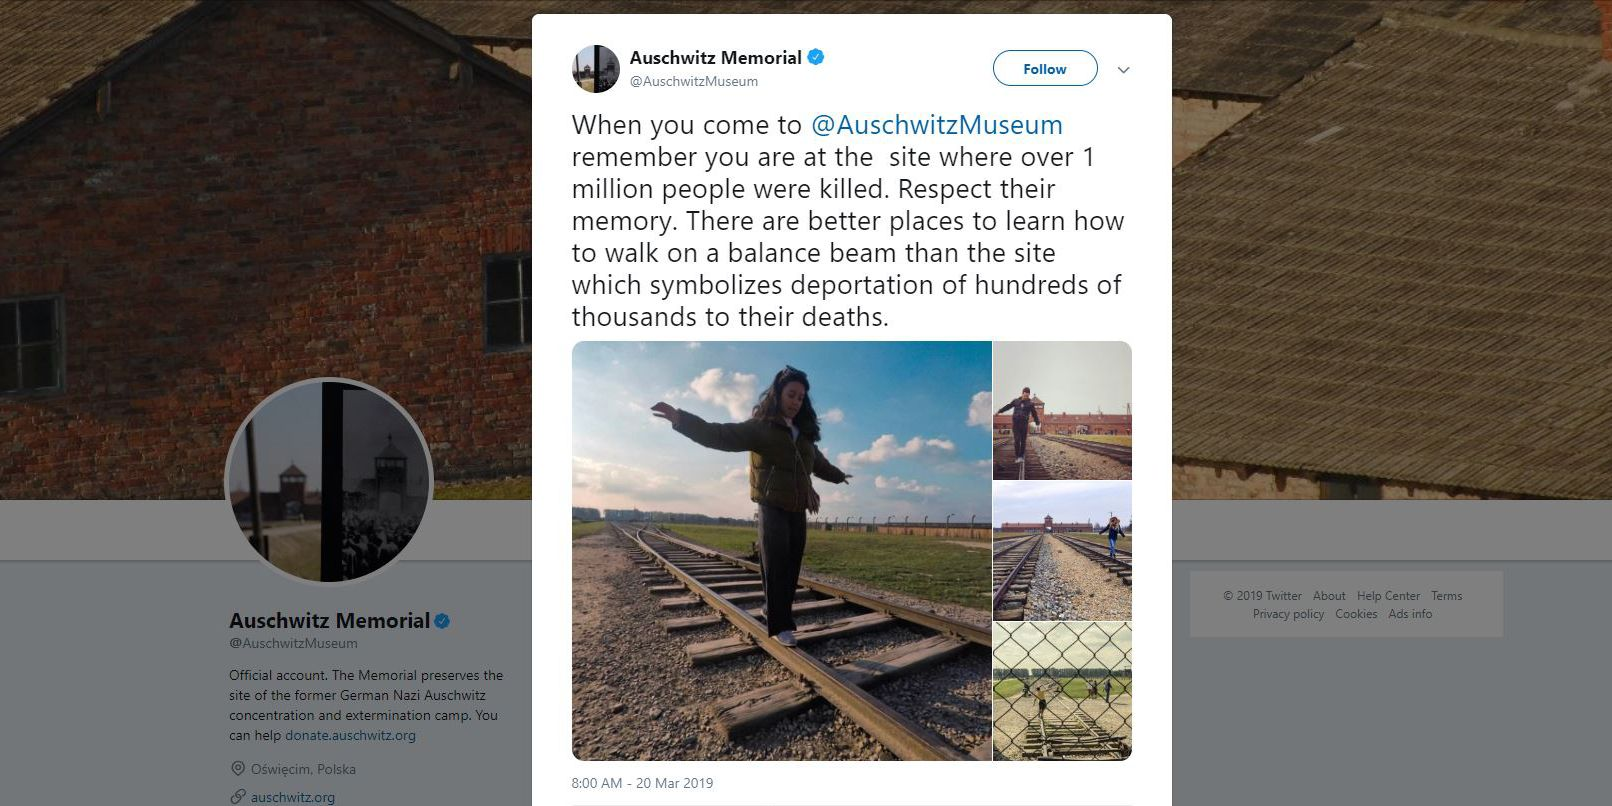 Auschwitz Memorial asks visitors to stop taking cute photos at former Nazi death camp